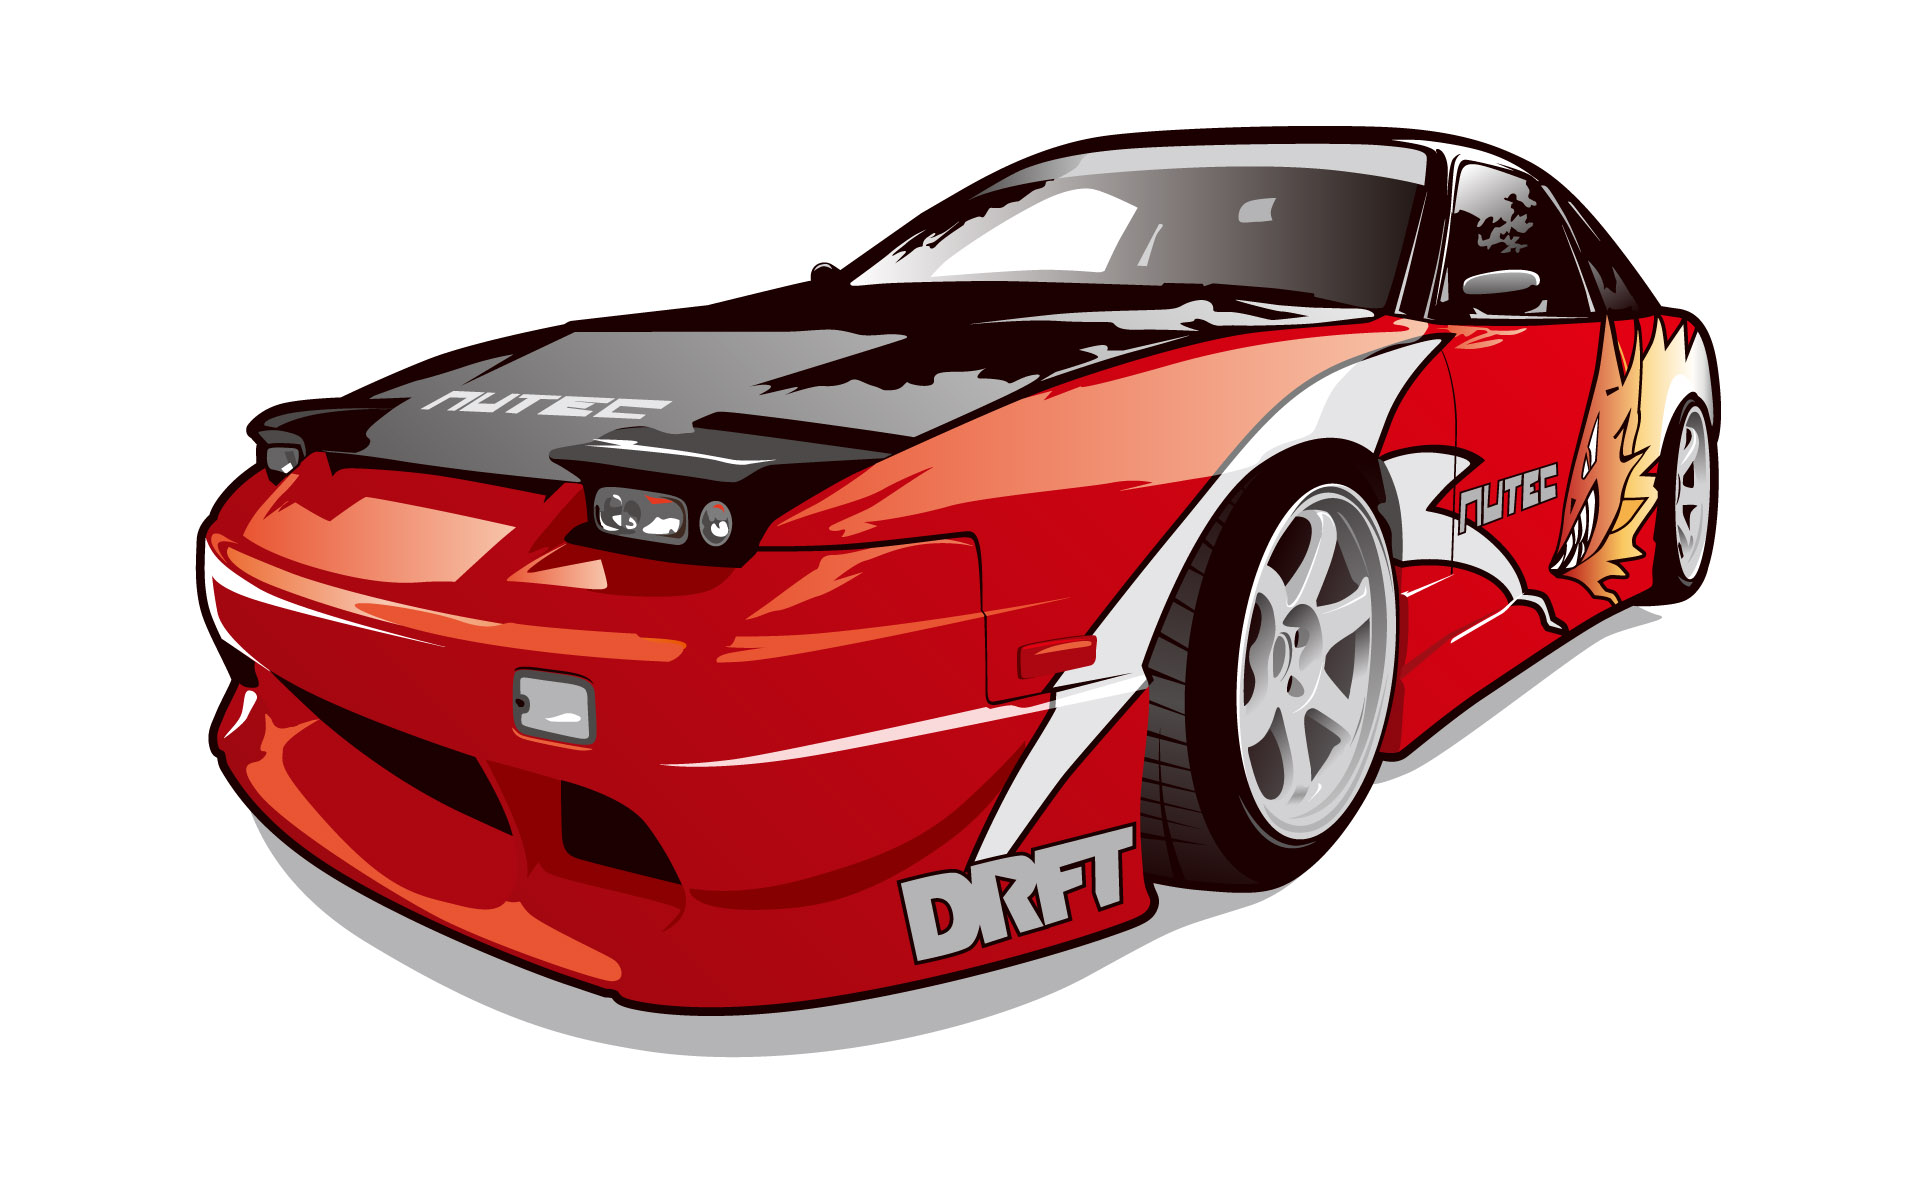 1920x1200 The First Series Of Vector Auto Widescreen 18011